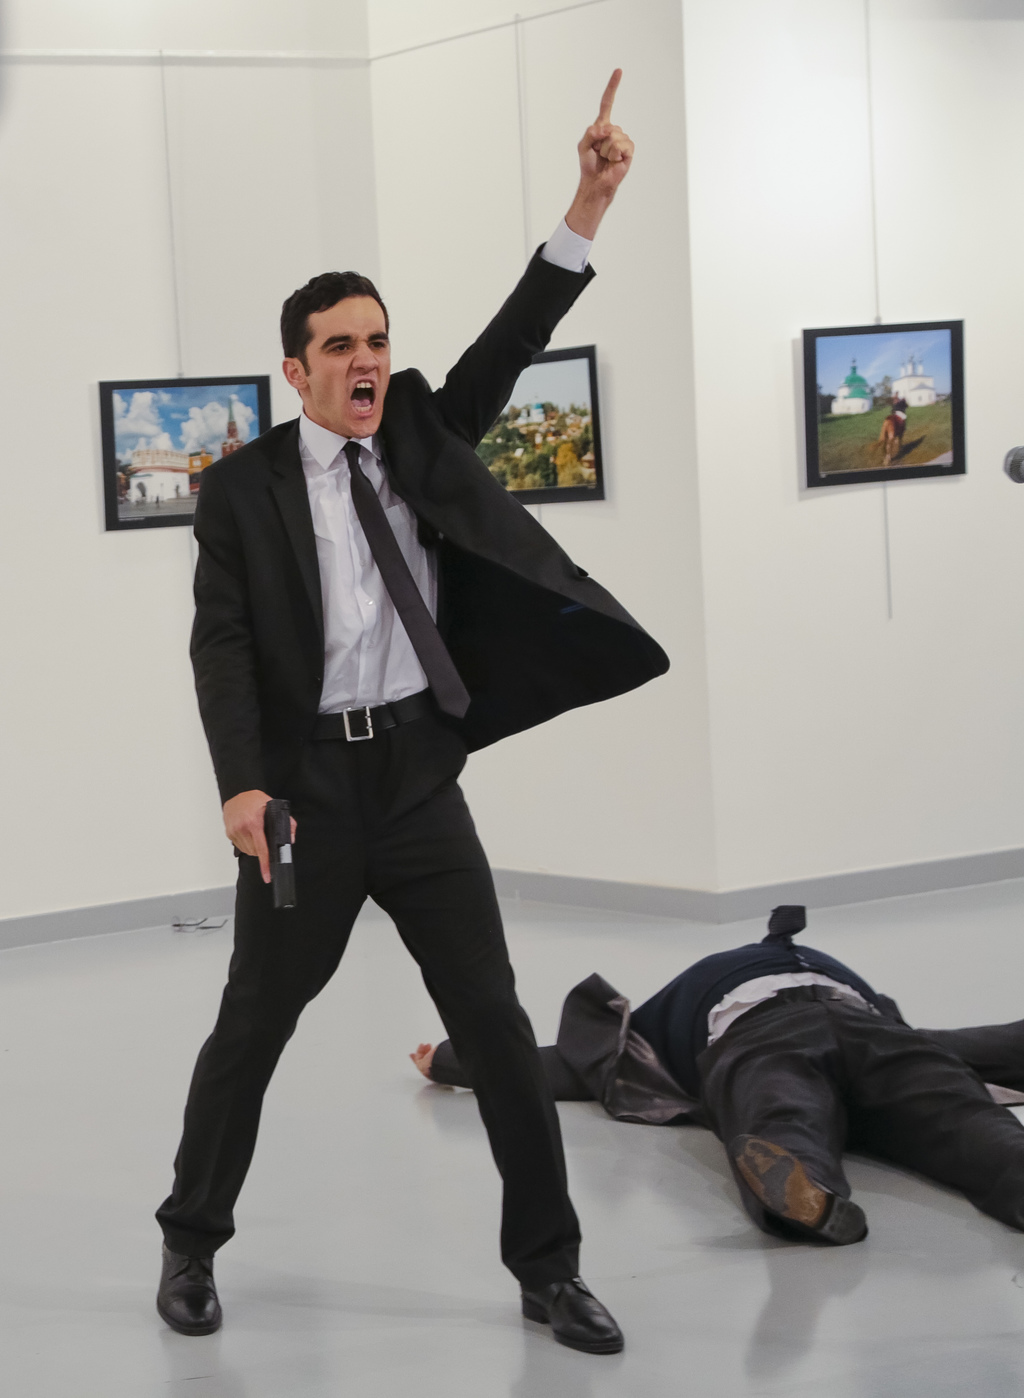 FILE - In this Monday, Dec. 19, 2016 file photo, Mevlut Mert Altintas shouts after shooting Andrei Karlov, right, the Russian ambassado